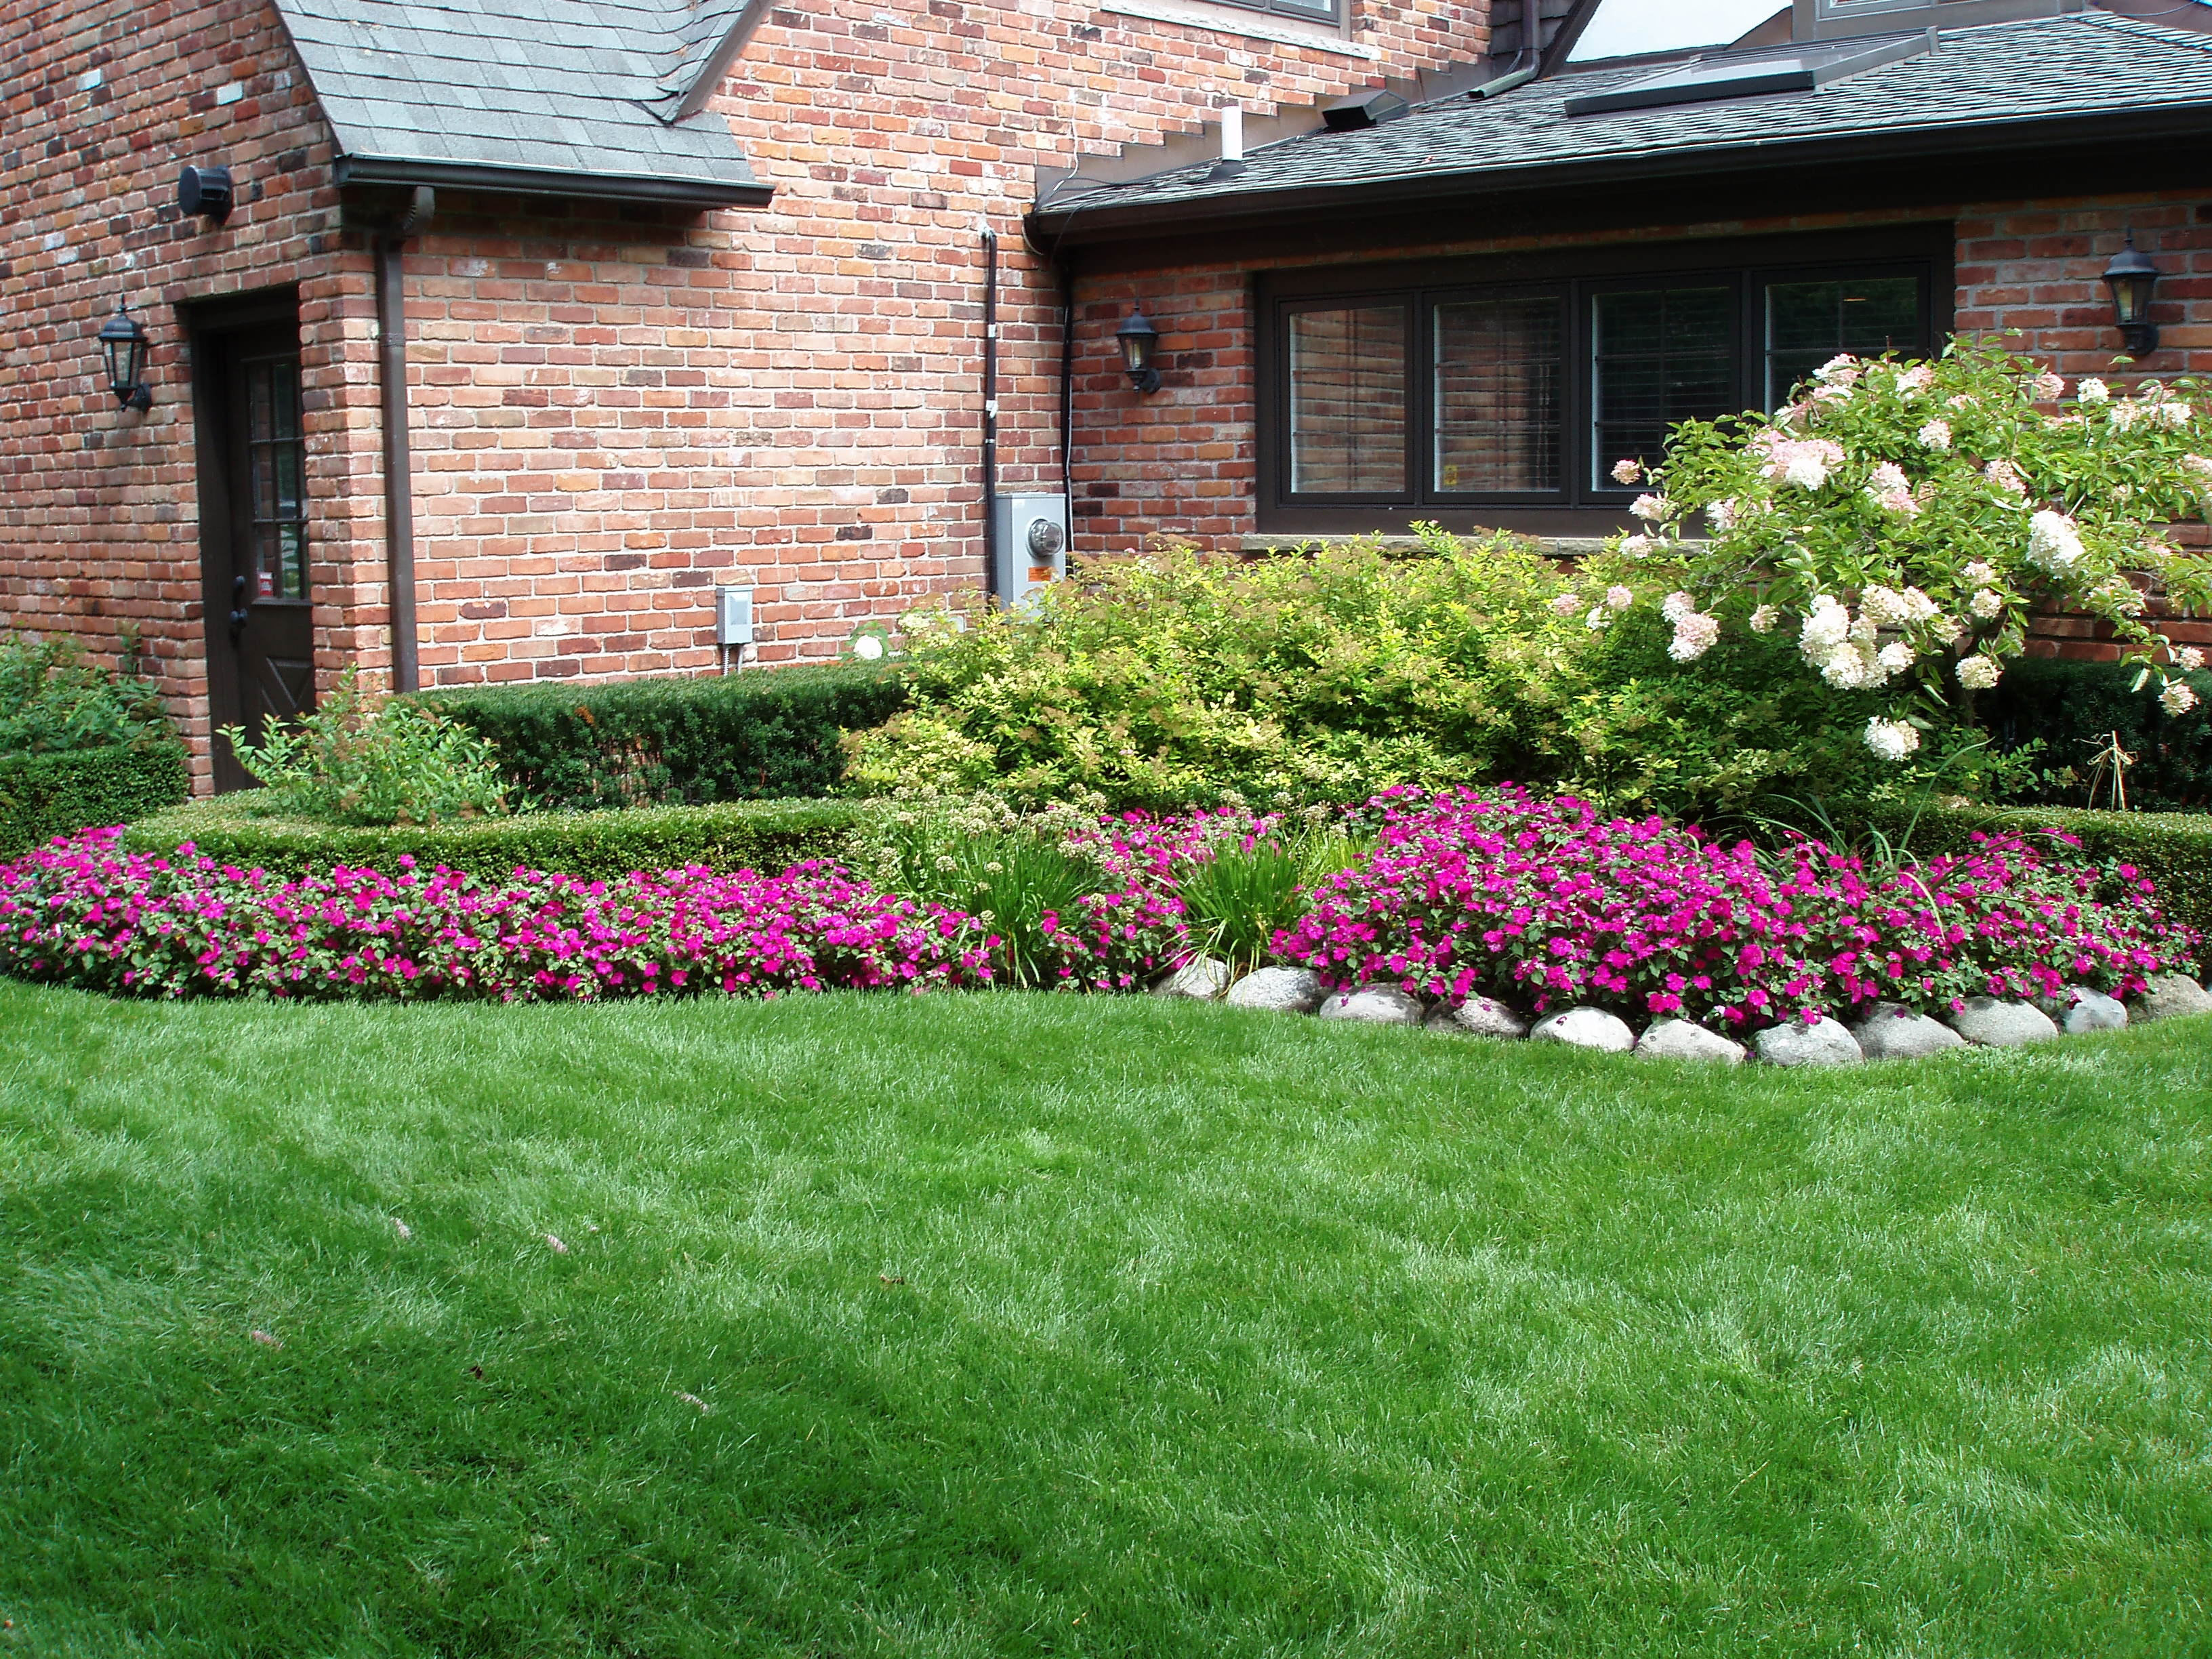 Perennials total lawn care inc full lawn maintenance for Garden design pictures